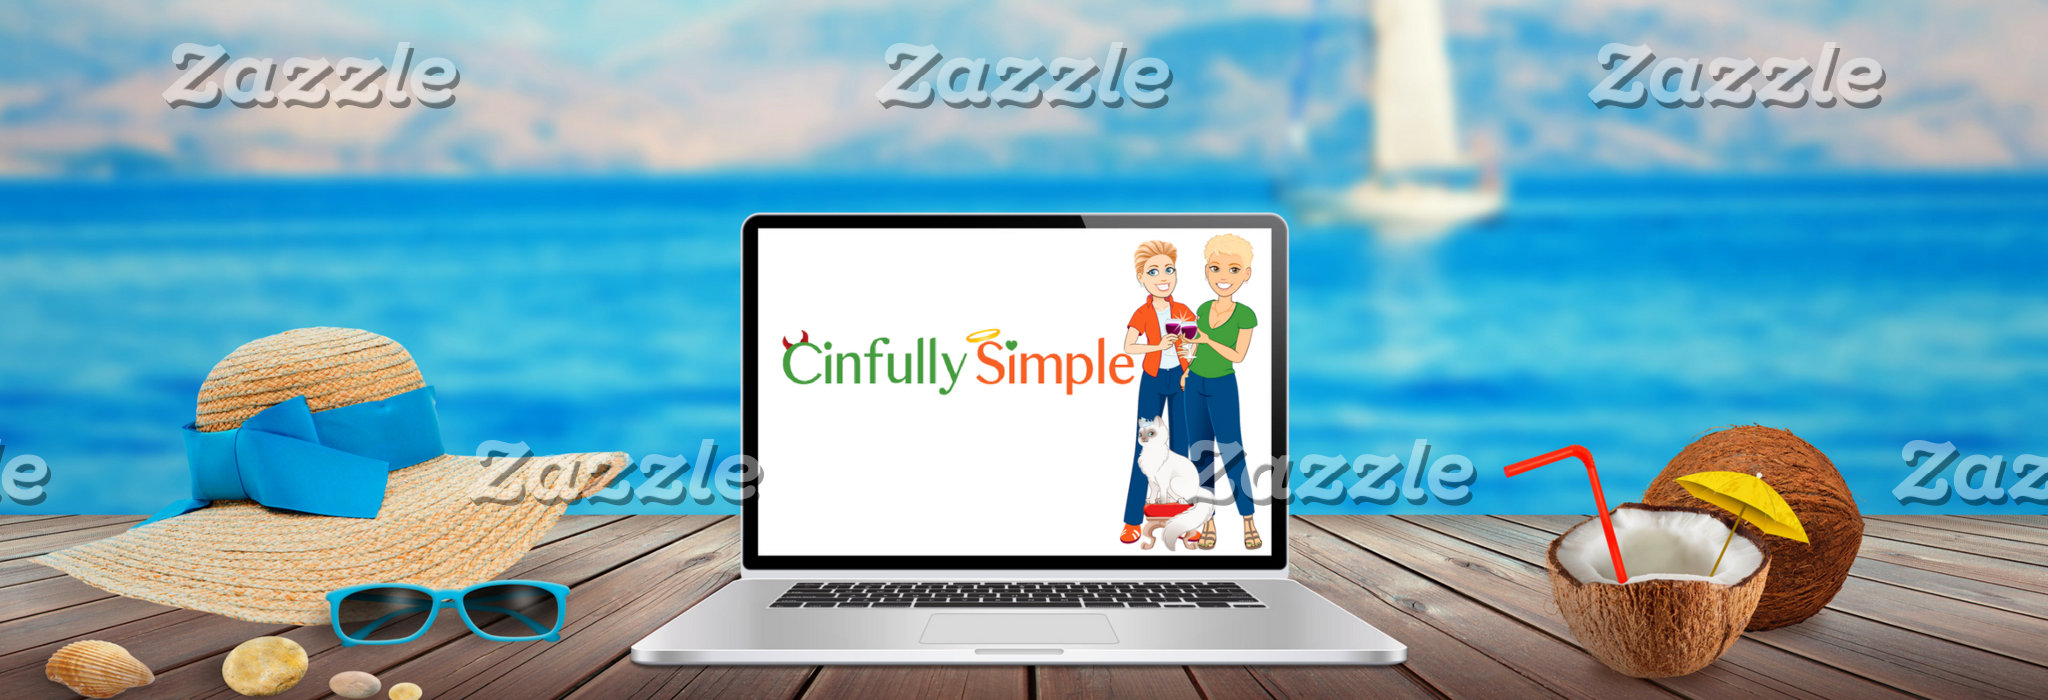 CinfullySimple